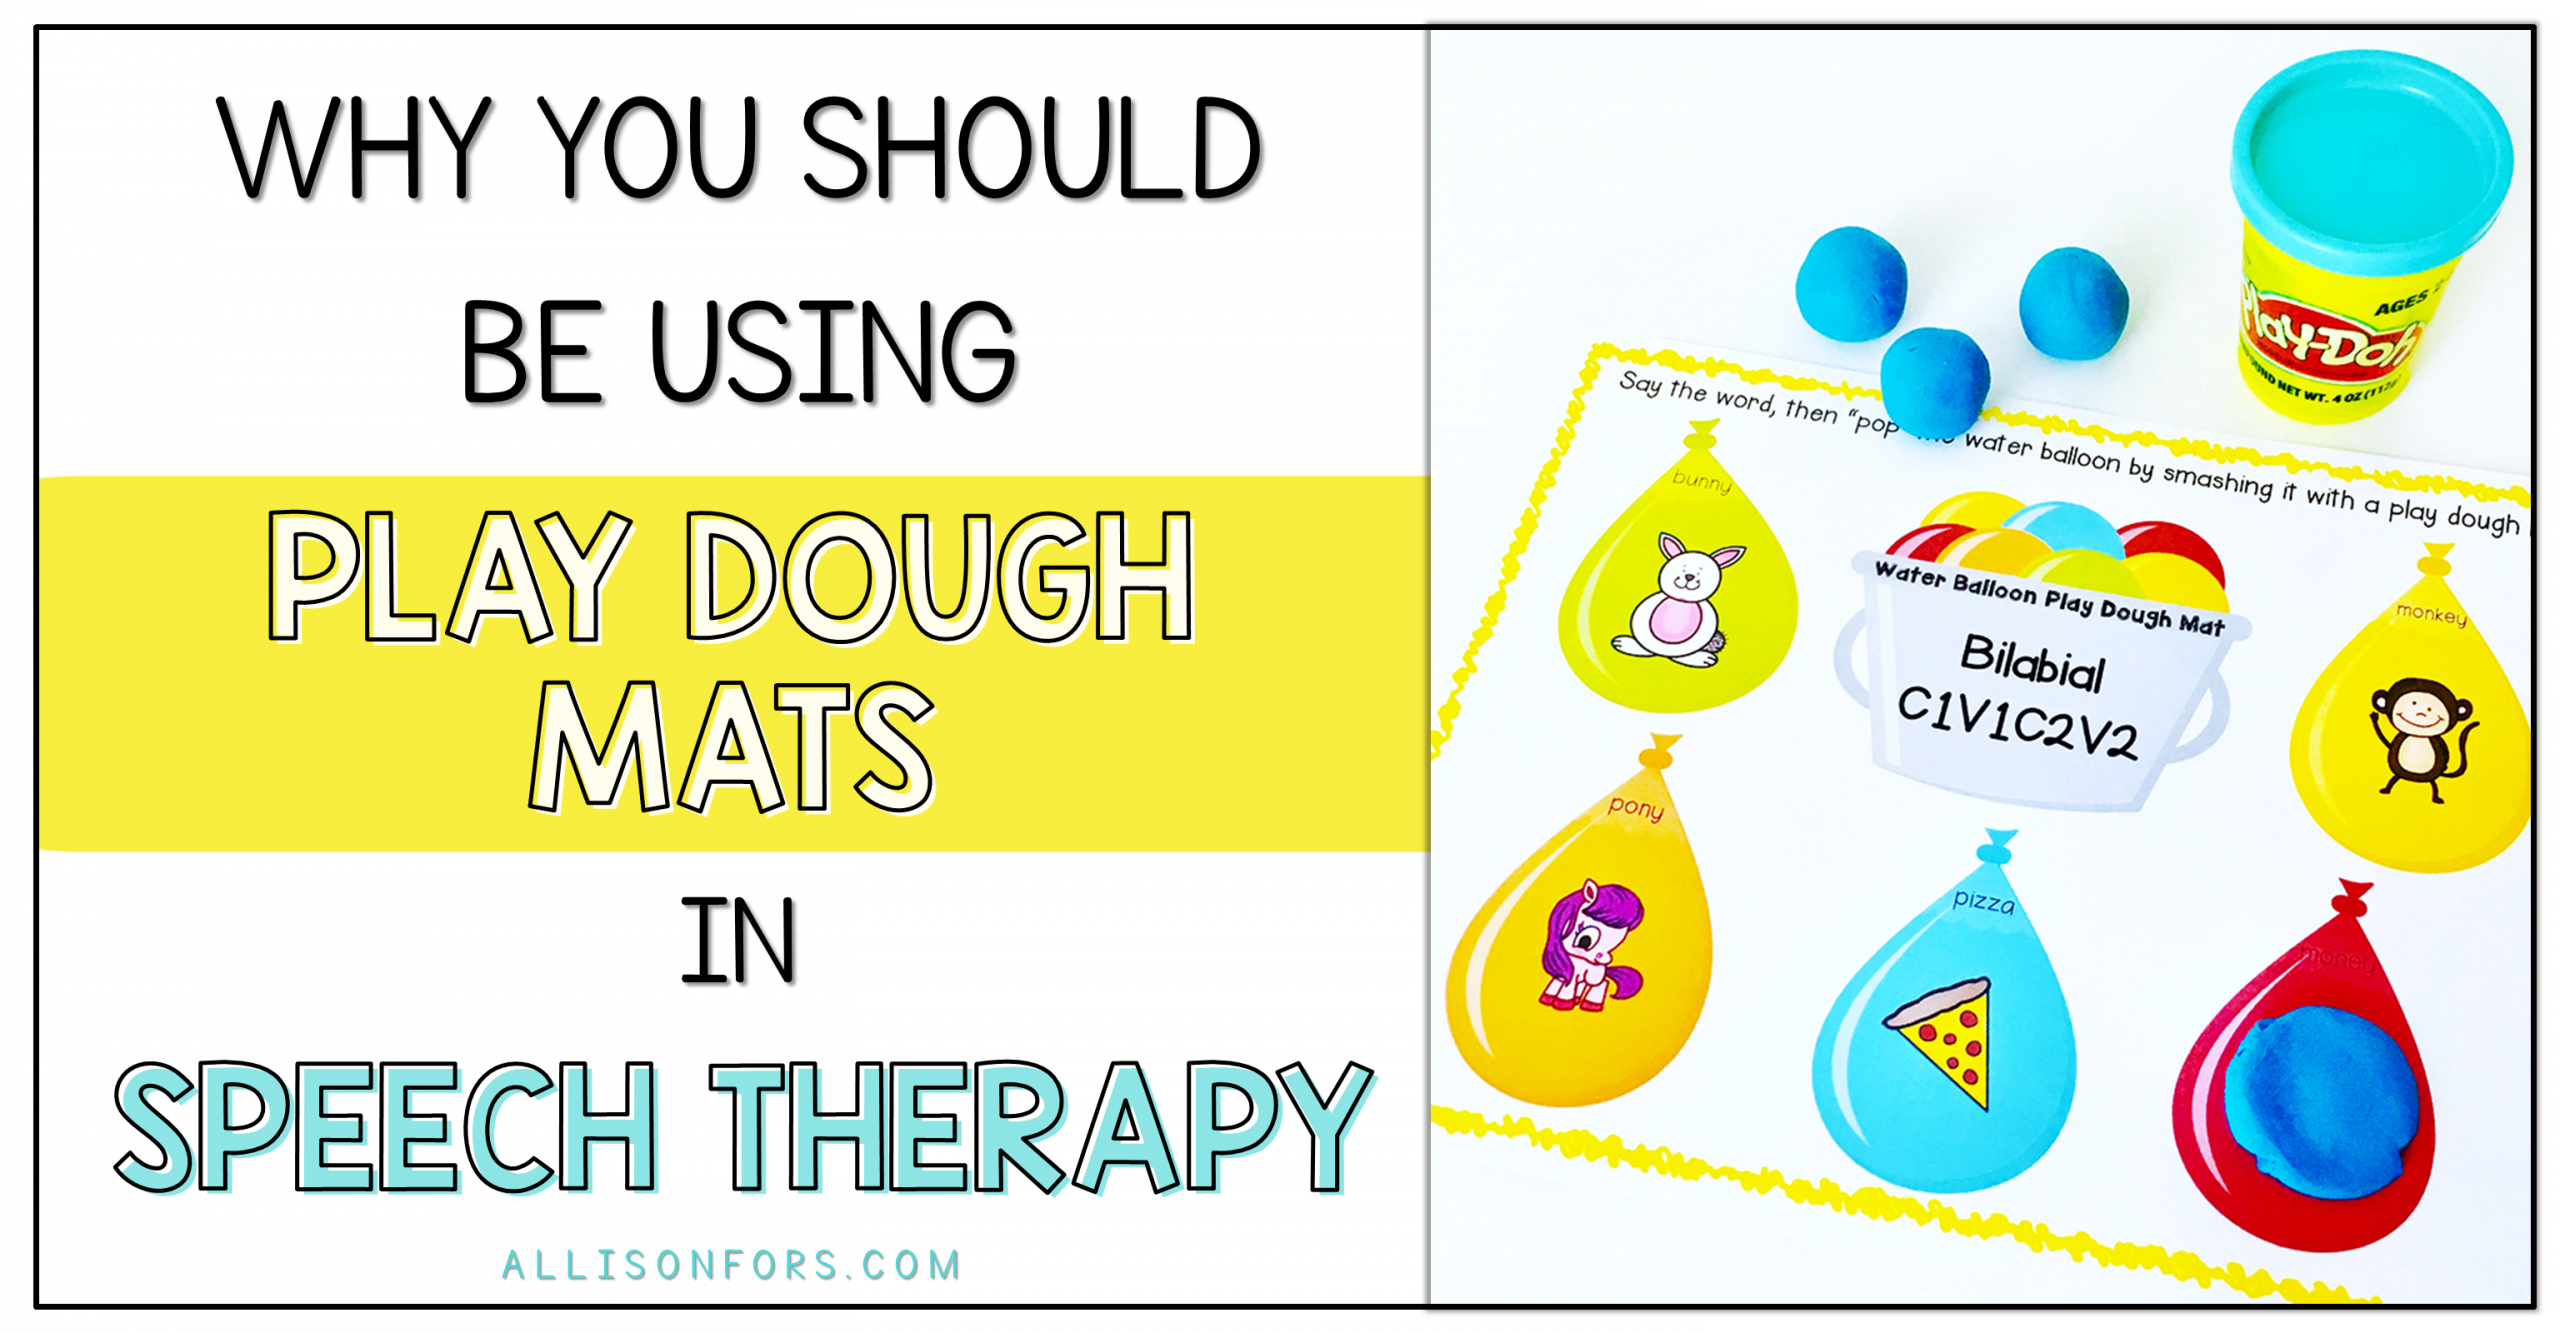 Why You Should Be Using Play Dough Mats in Speech Therapy